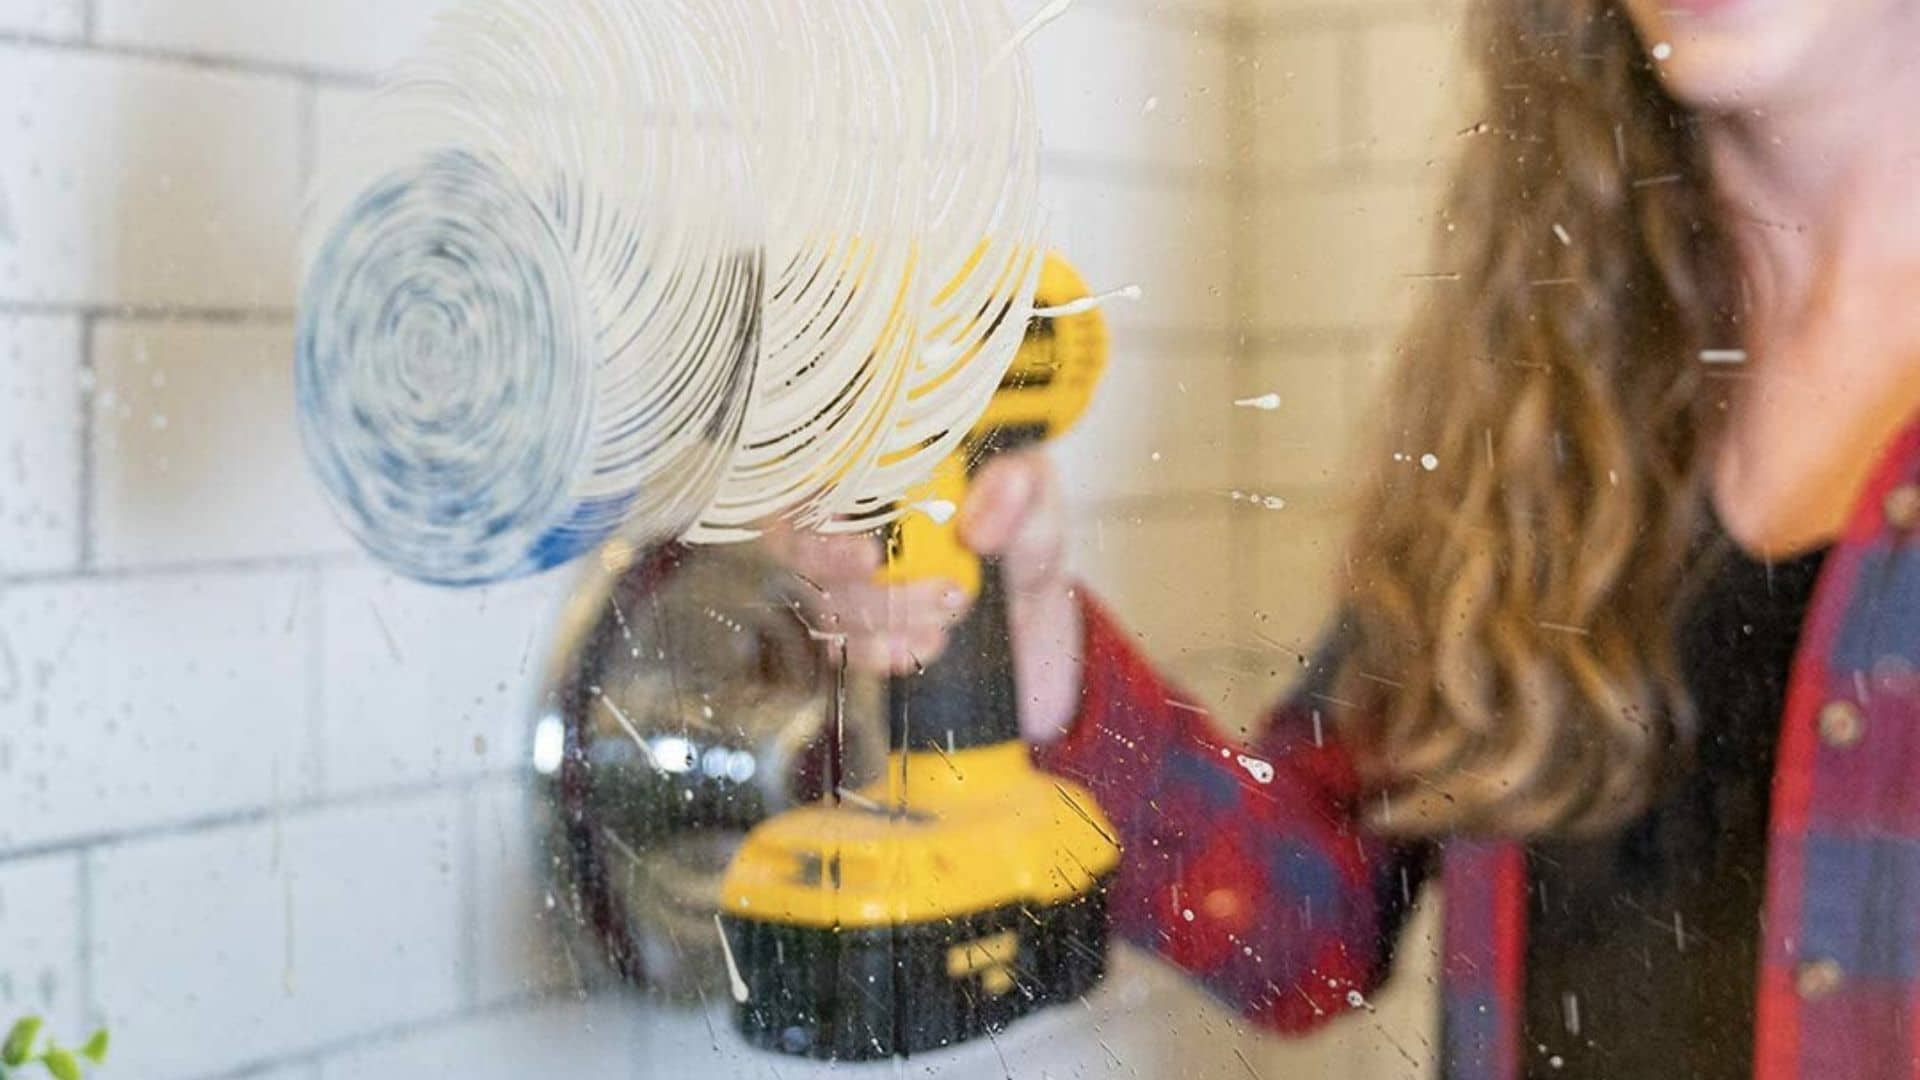 picture of woman using rotoscrub bathroom cleaning brush drill to wash shower glass